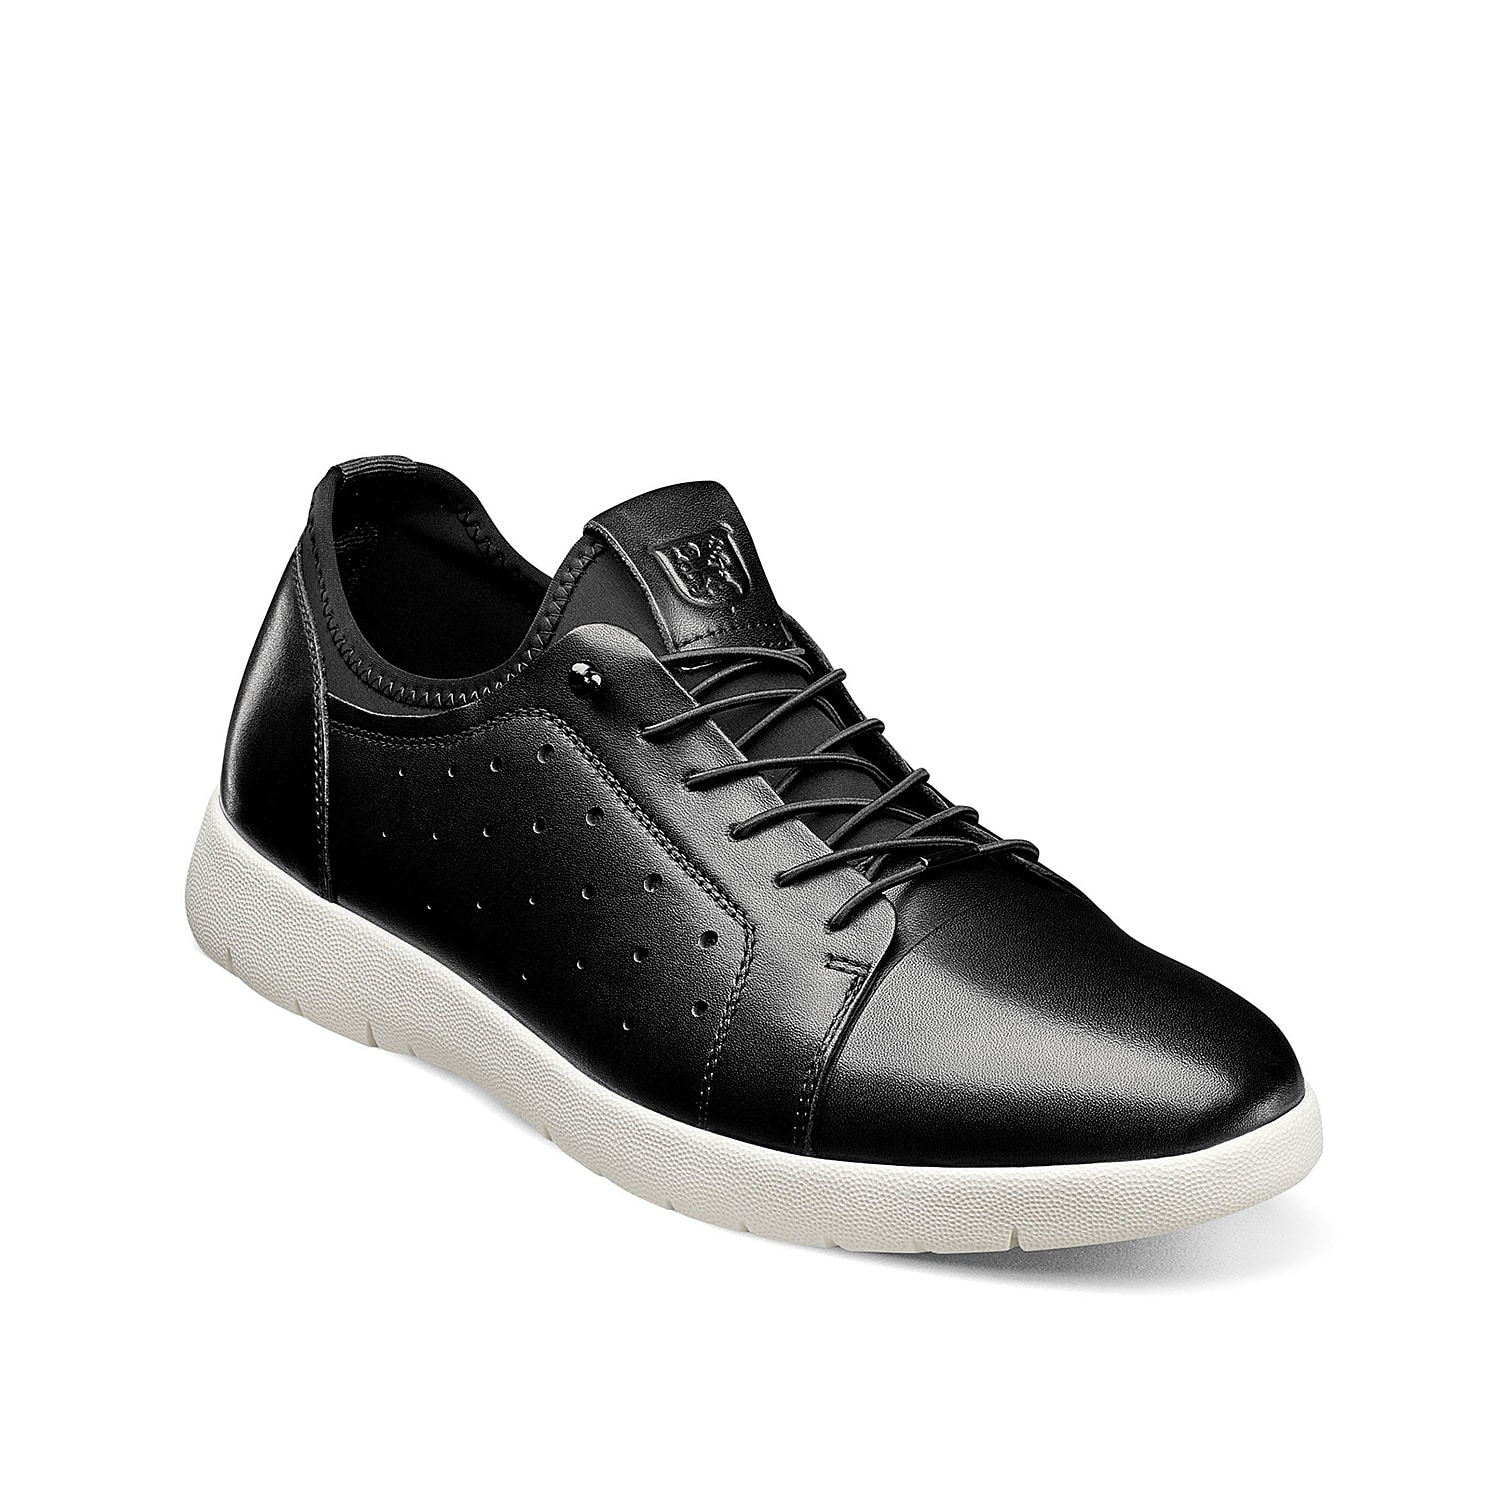 Gain major street cred with the Halden Oxford sneaker from Stacy Adams. This retro design featuring a leather upper and cushioned insole is the perfect combination of dressy and sporty.